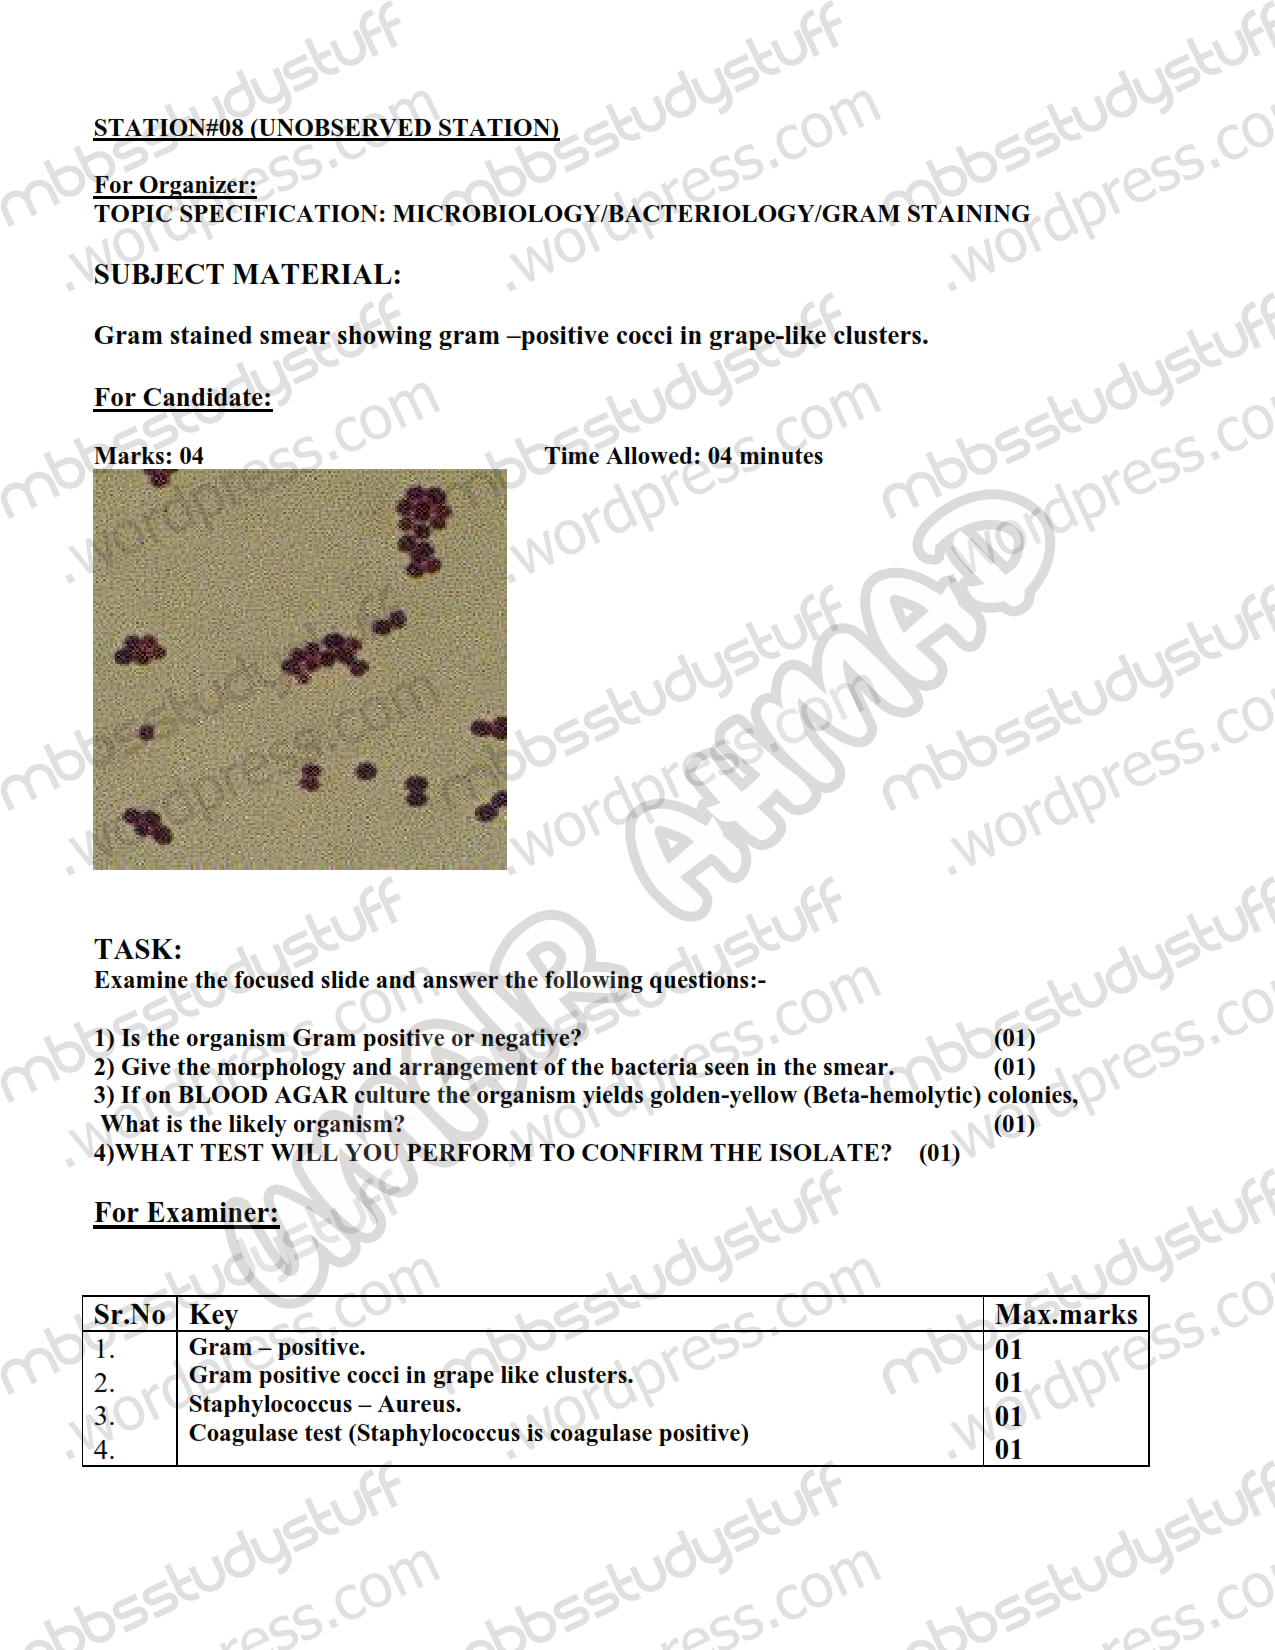 general pathology essay questions Preparing for the pathology board exam will not be without its difficulties make  life easier by answering these 5 free pathology sample.